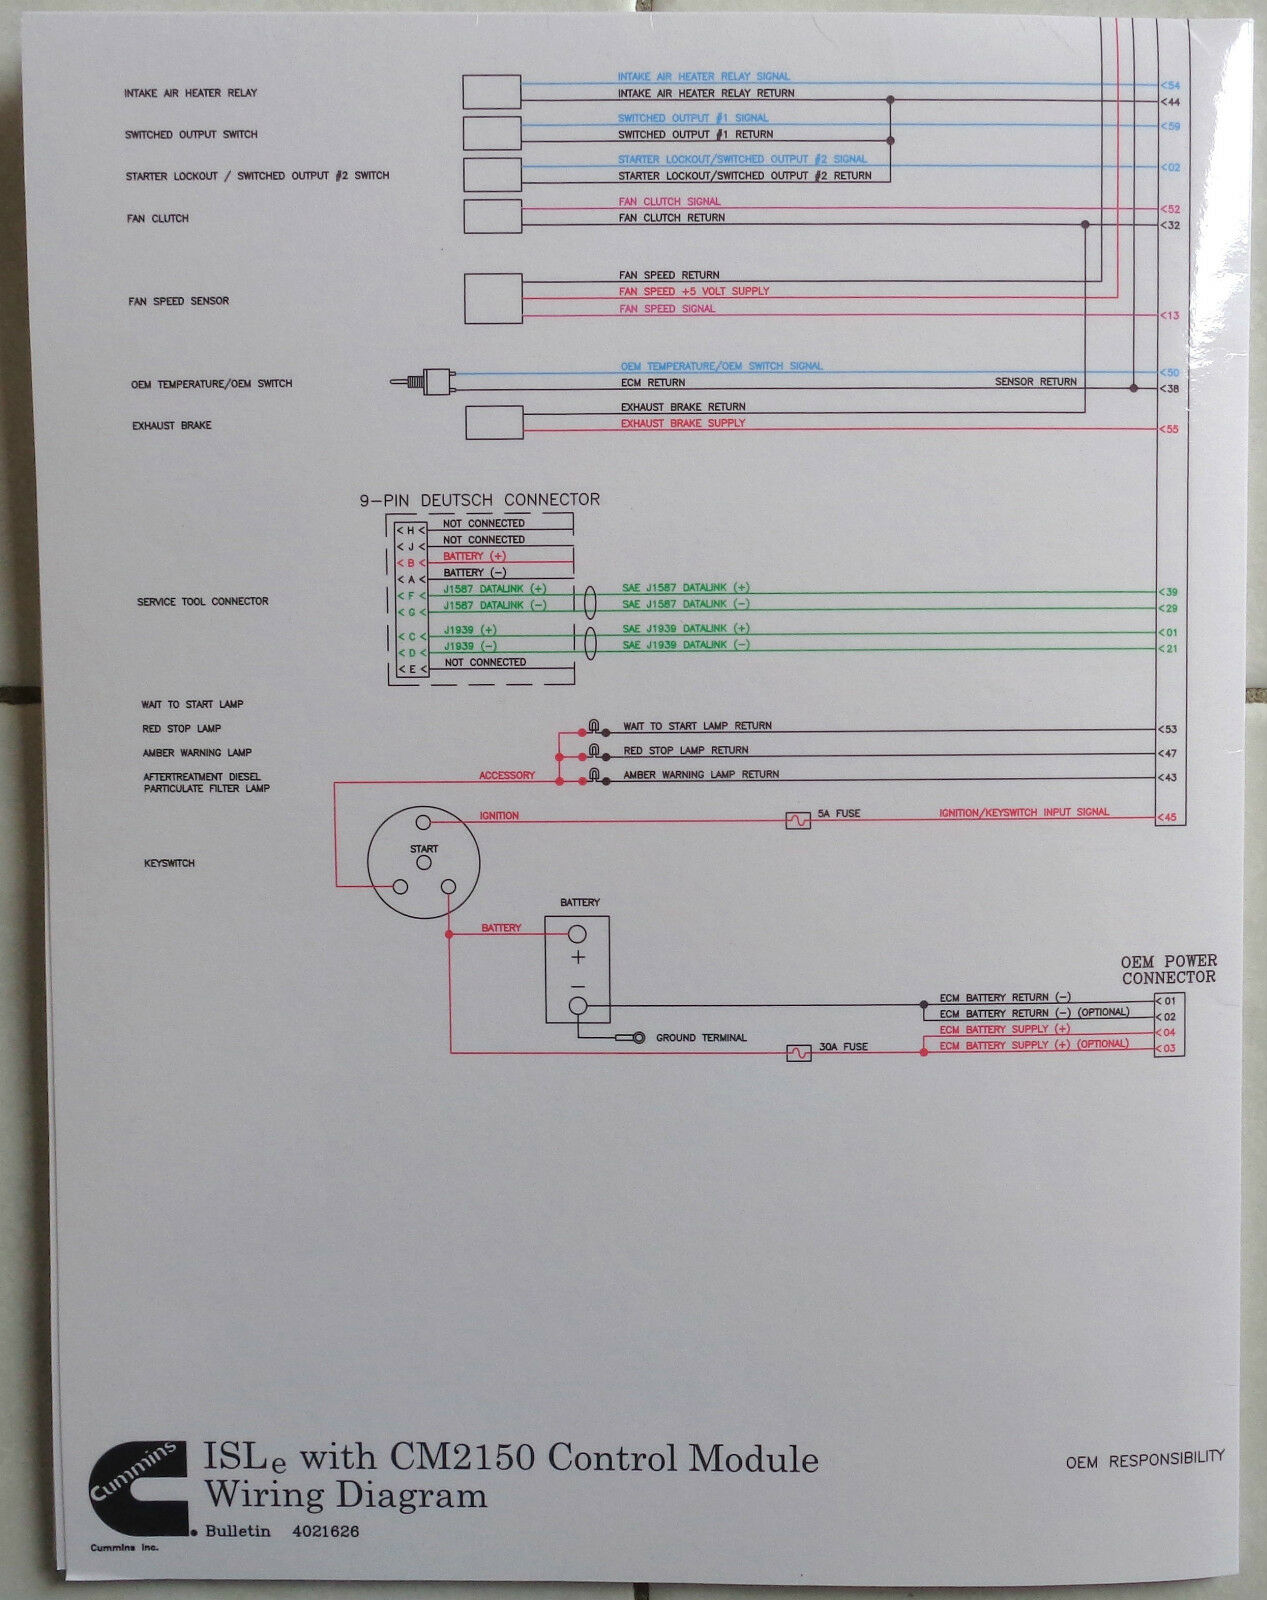 Cummins Laminated Isle With Cm2150 Control Module Wiring Diagram 2002 Indian Scout Diagrams